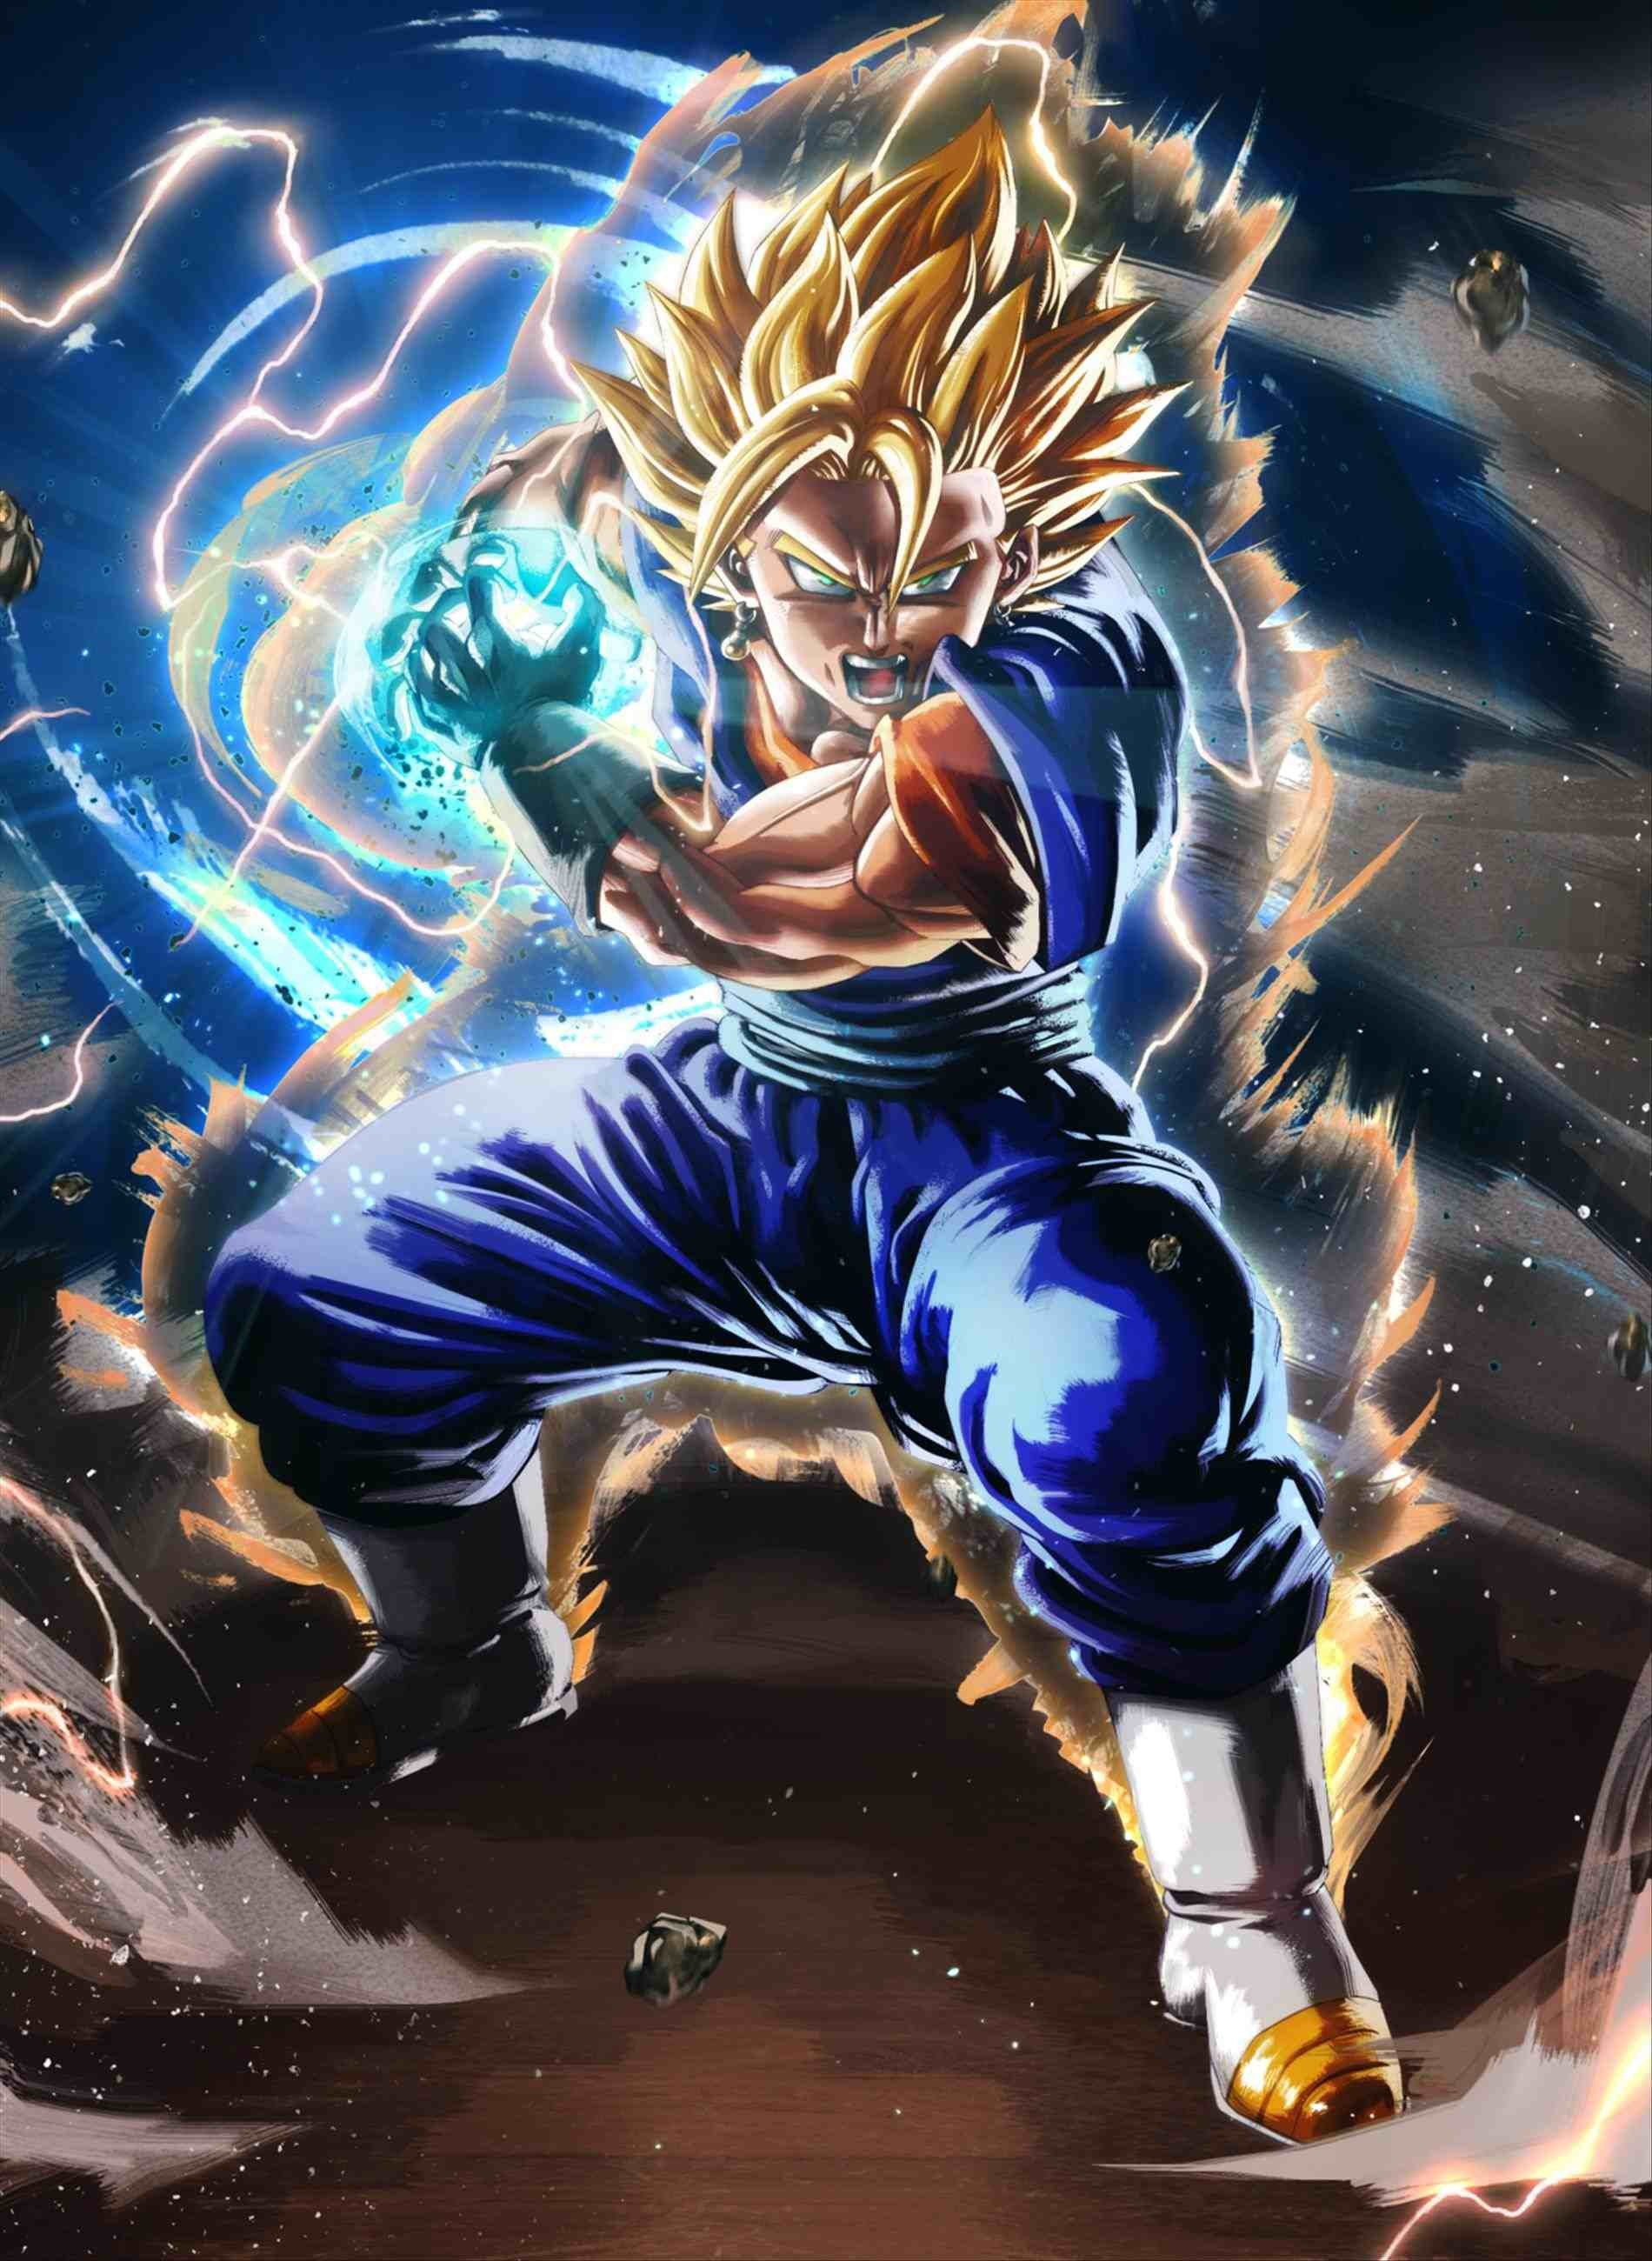 1900x2600 And Vegito Wallpaper Pinterest How To Draw Vegetto Ssj Final Kamehameha 1900x2600 Download Hd Wallpaper Wallpapertip